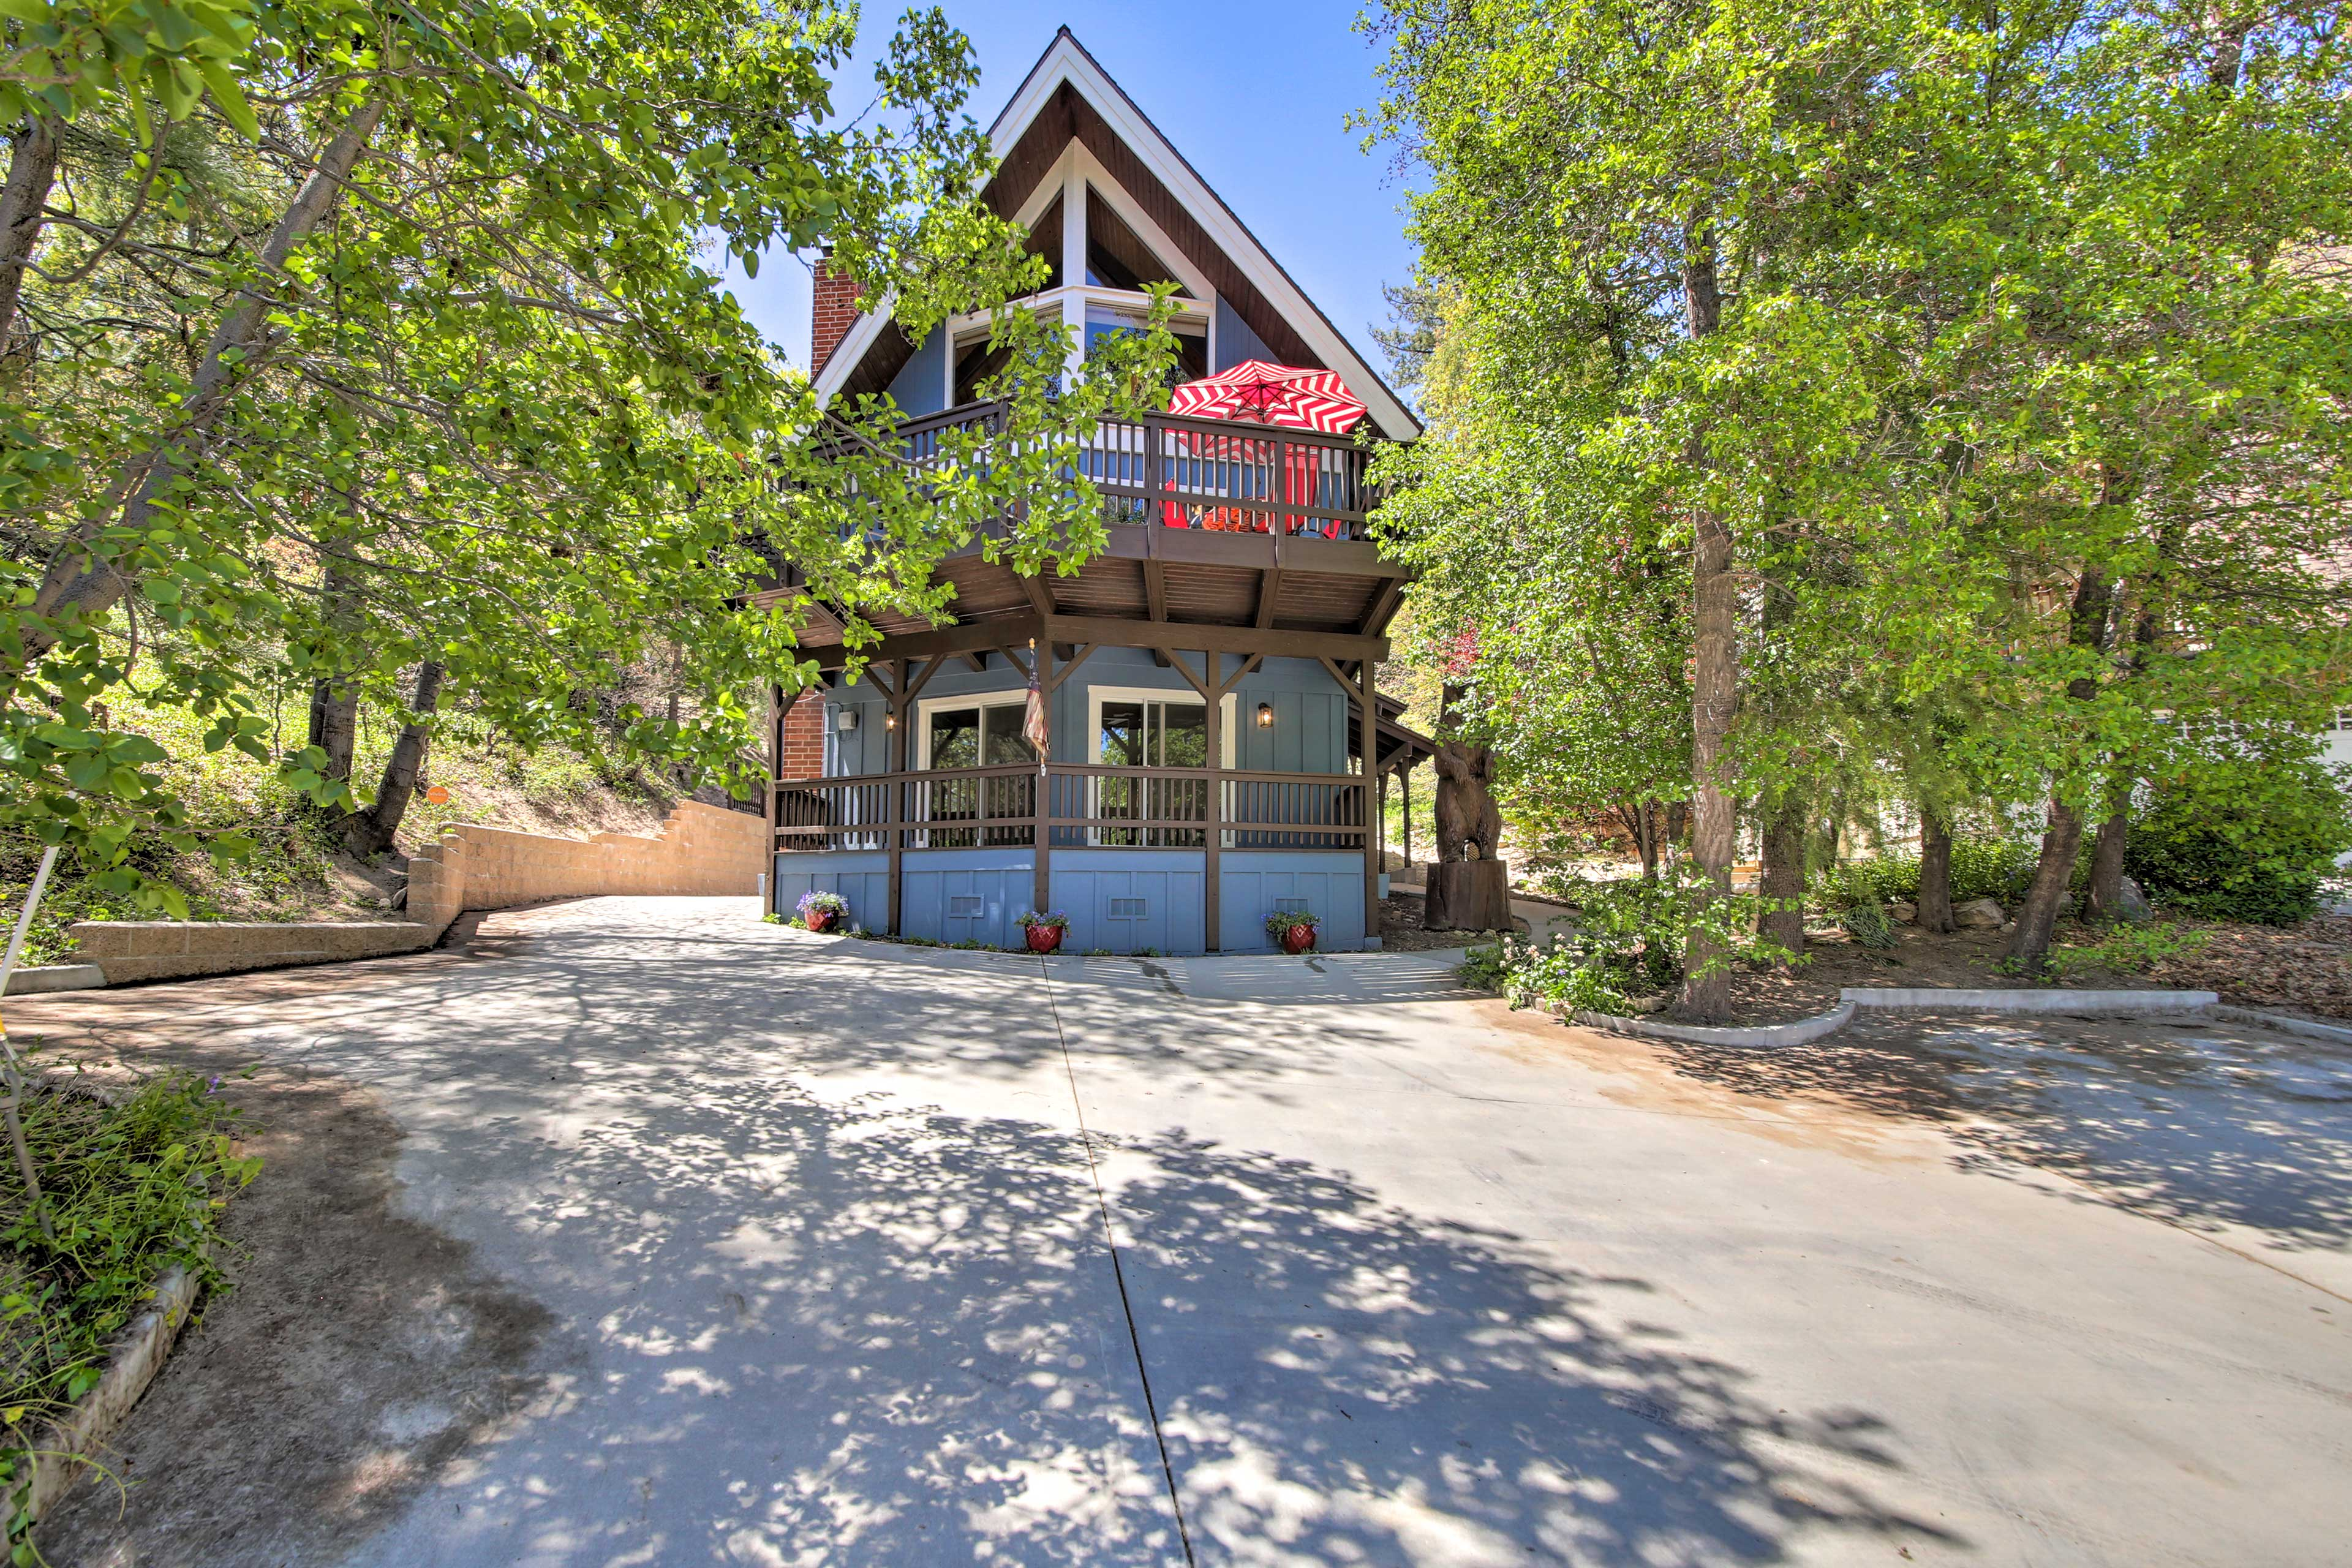 This chalet features 2,000 square feet, room for 8 guests, and multiple decks!